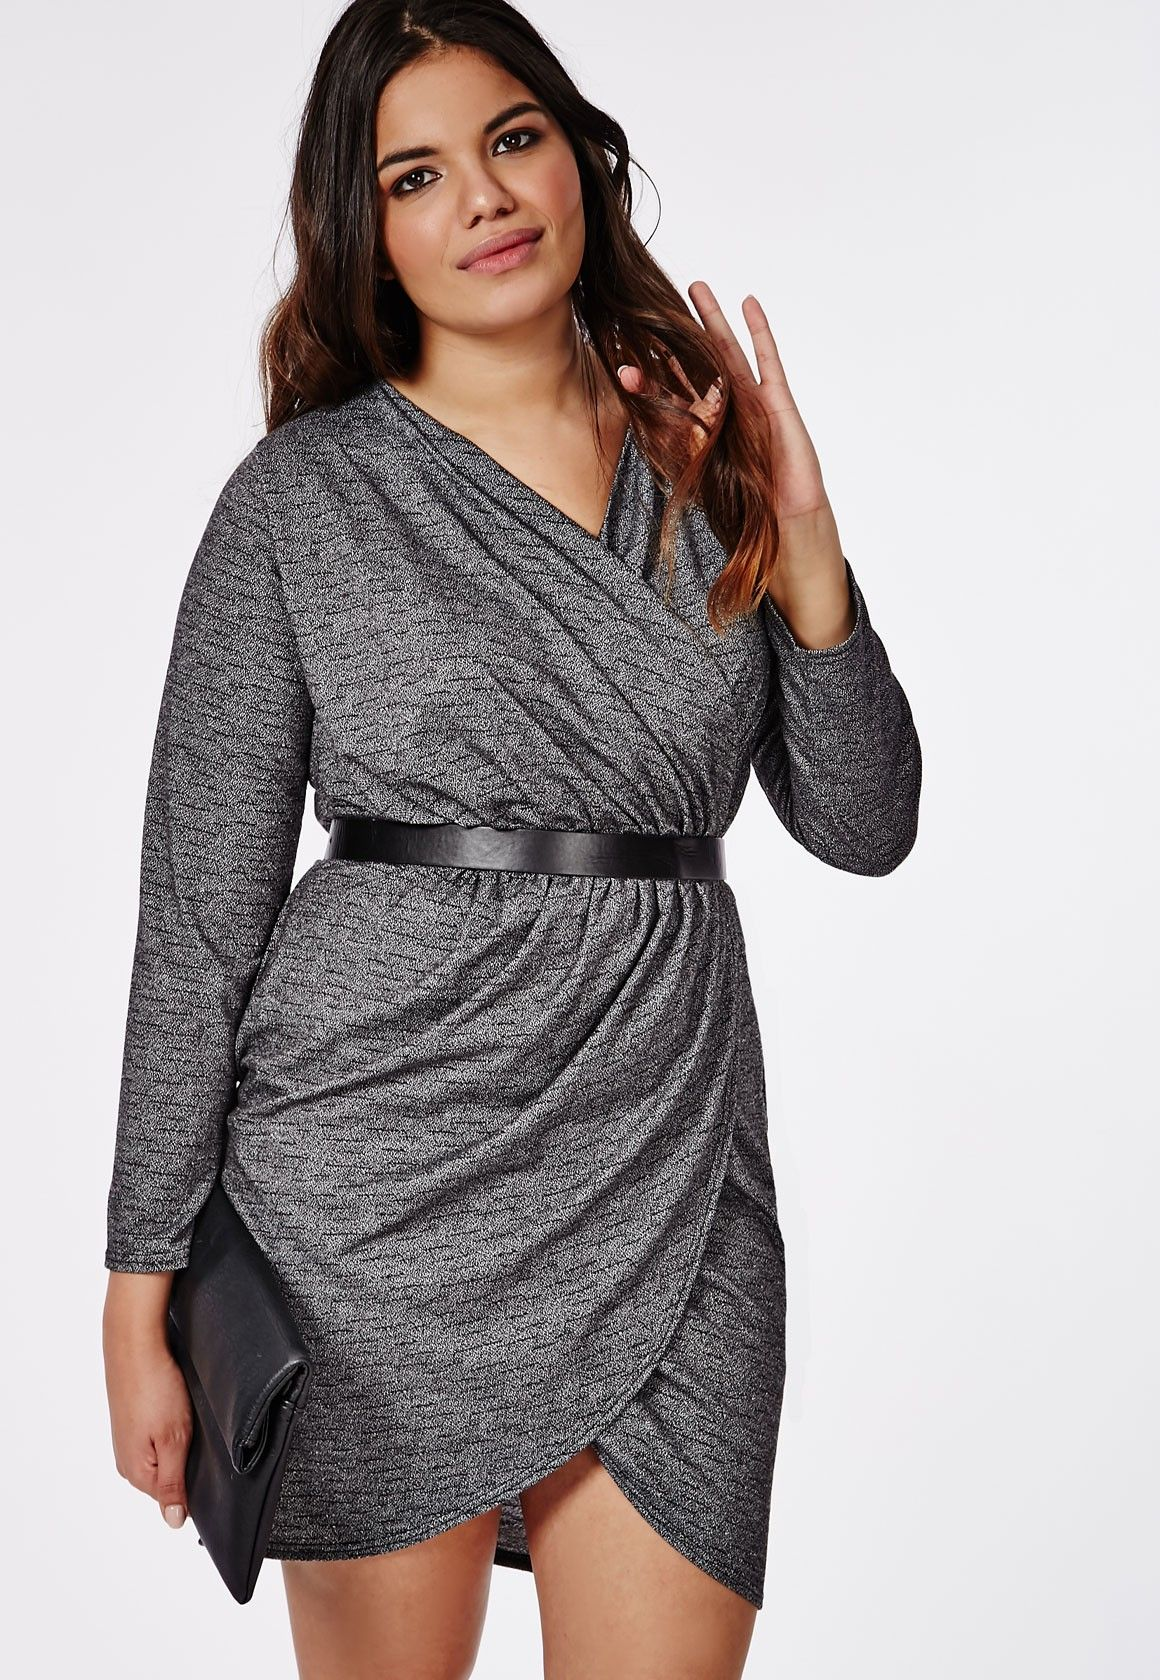 Going out dresses uk plus size